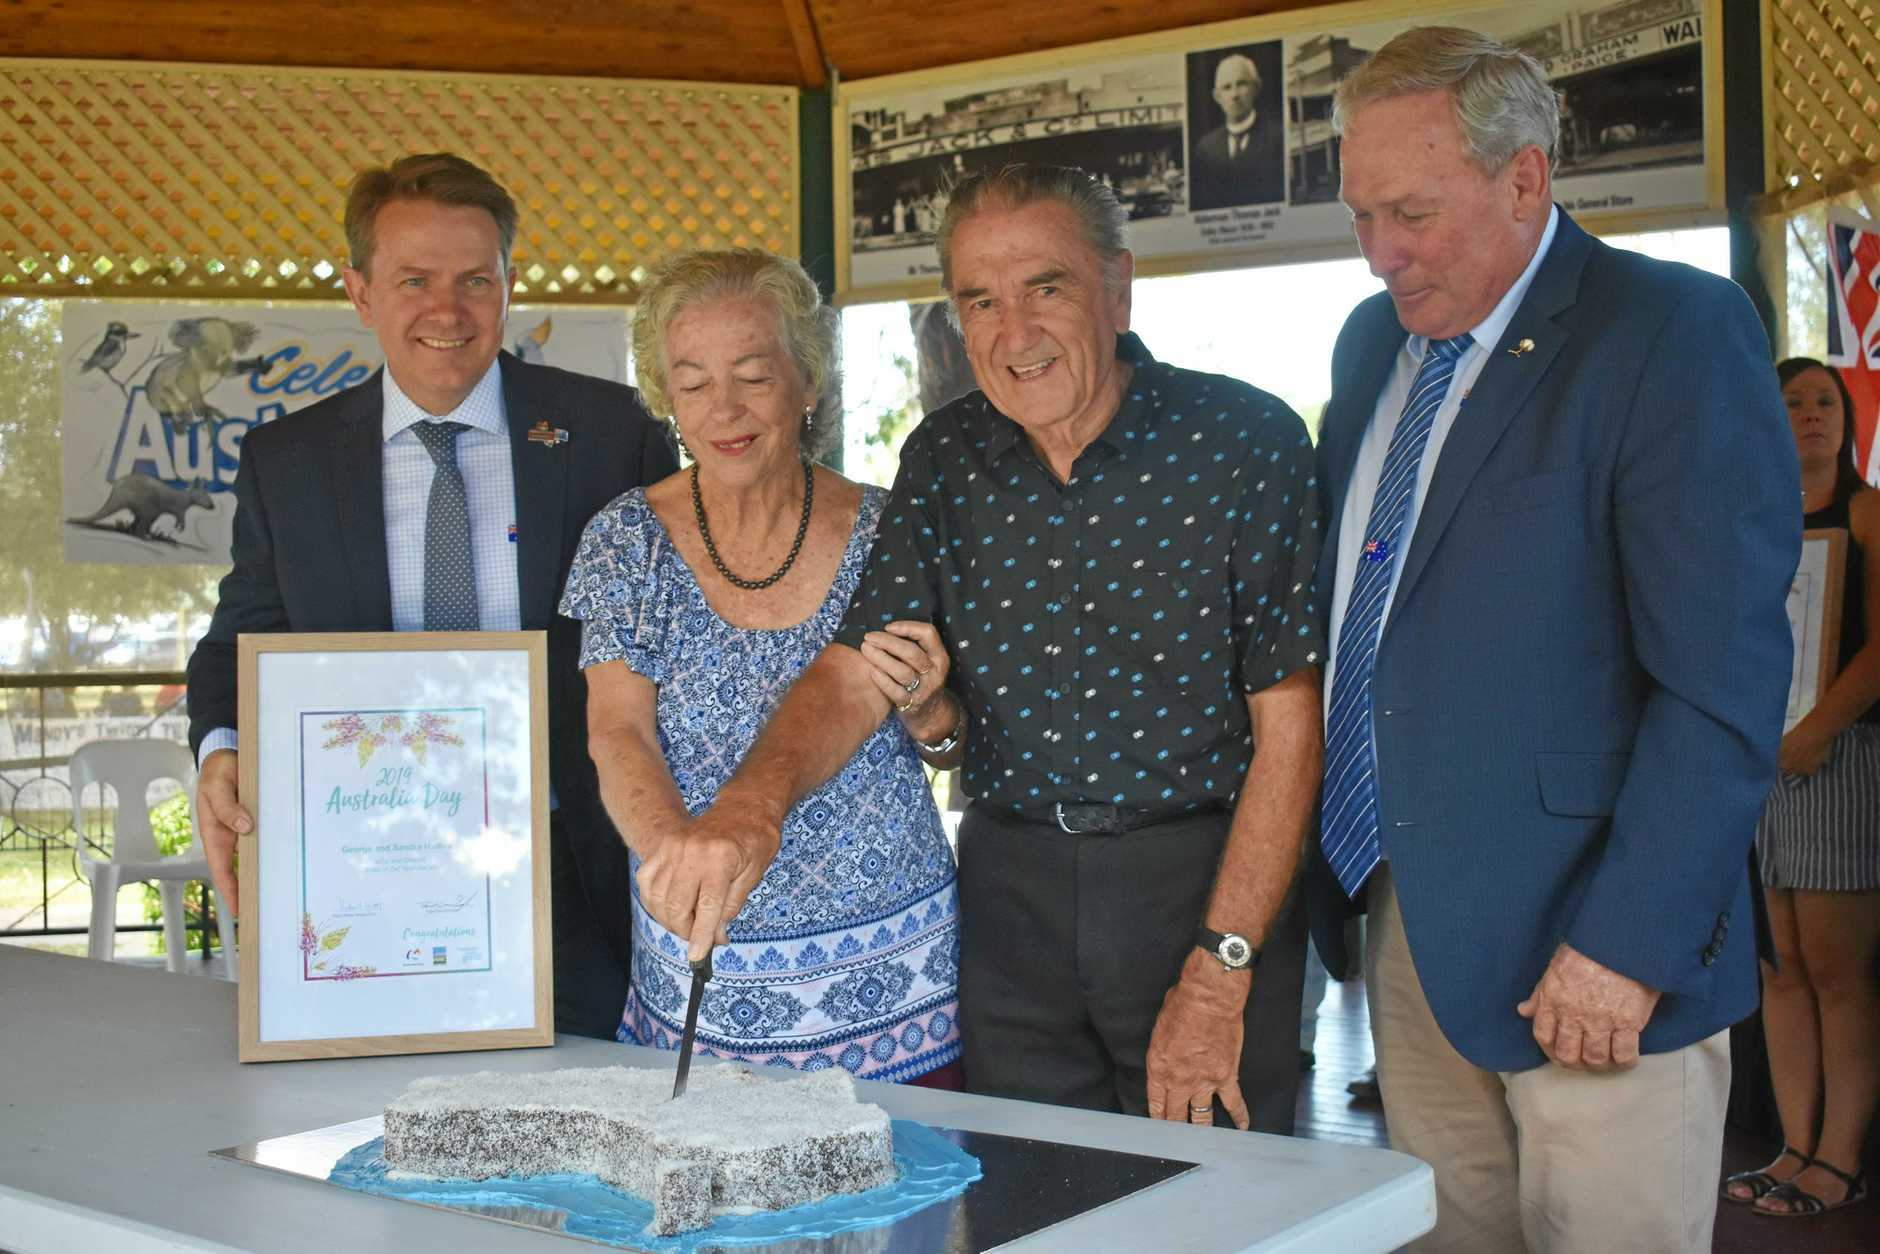 SWEET TOOTH: Citizens of the year, Sandra and George Hames cut the cake with Australia Day ambassador Dr Glenn Gardener and Mayor Paul McVeigh. The cake was in the shape of Australia, including a floating piece for Tasmania.